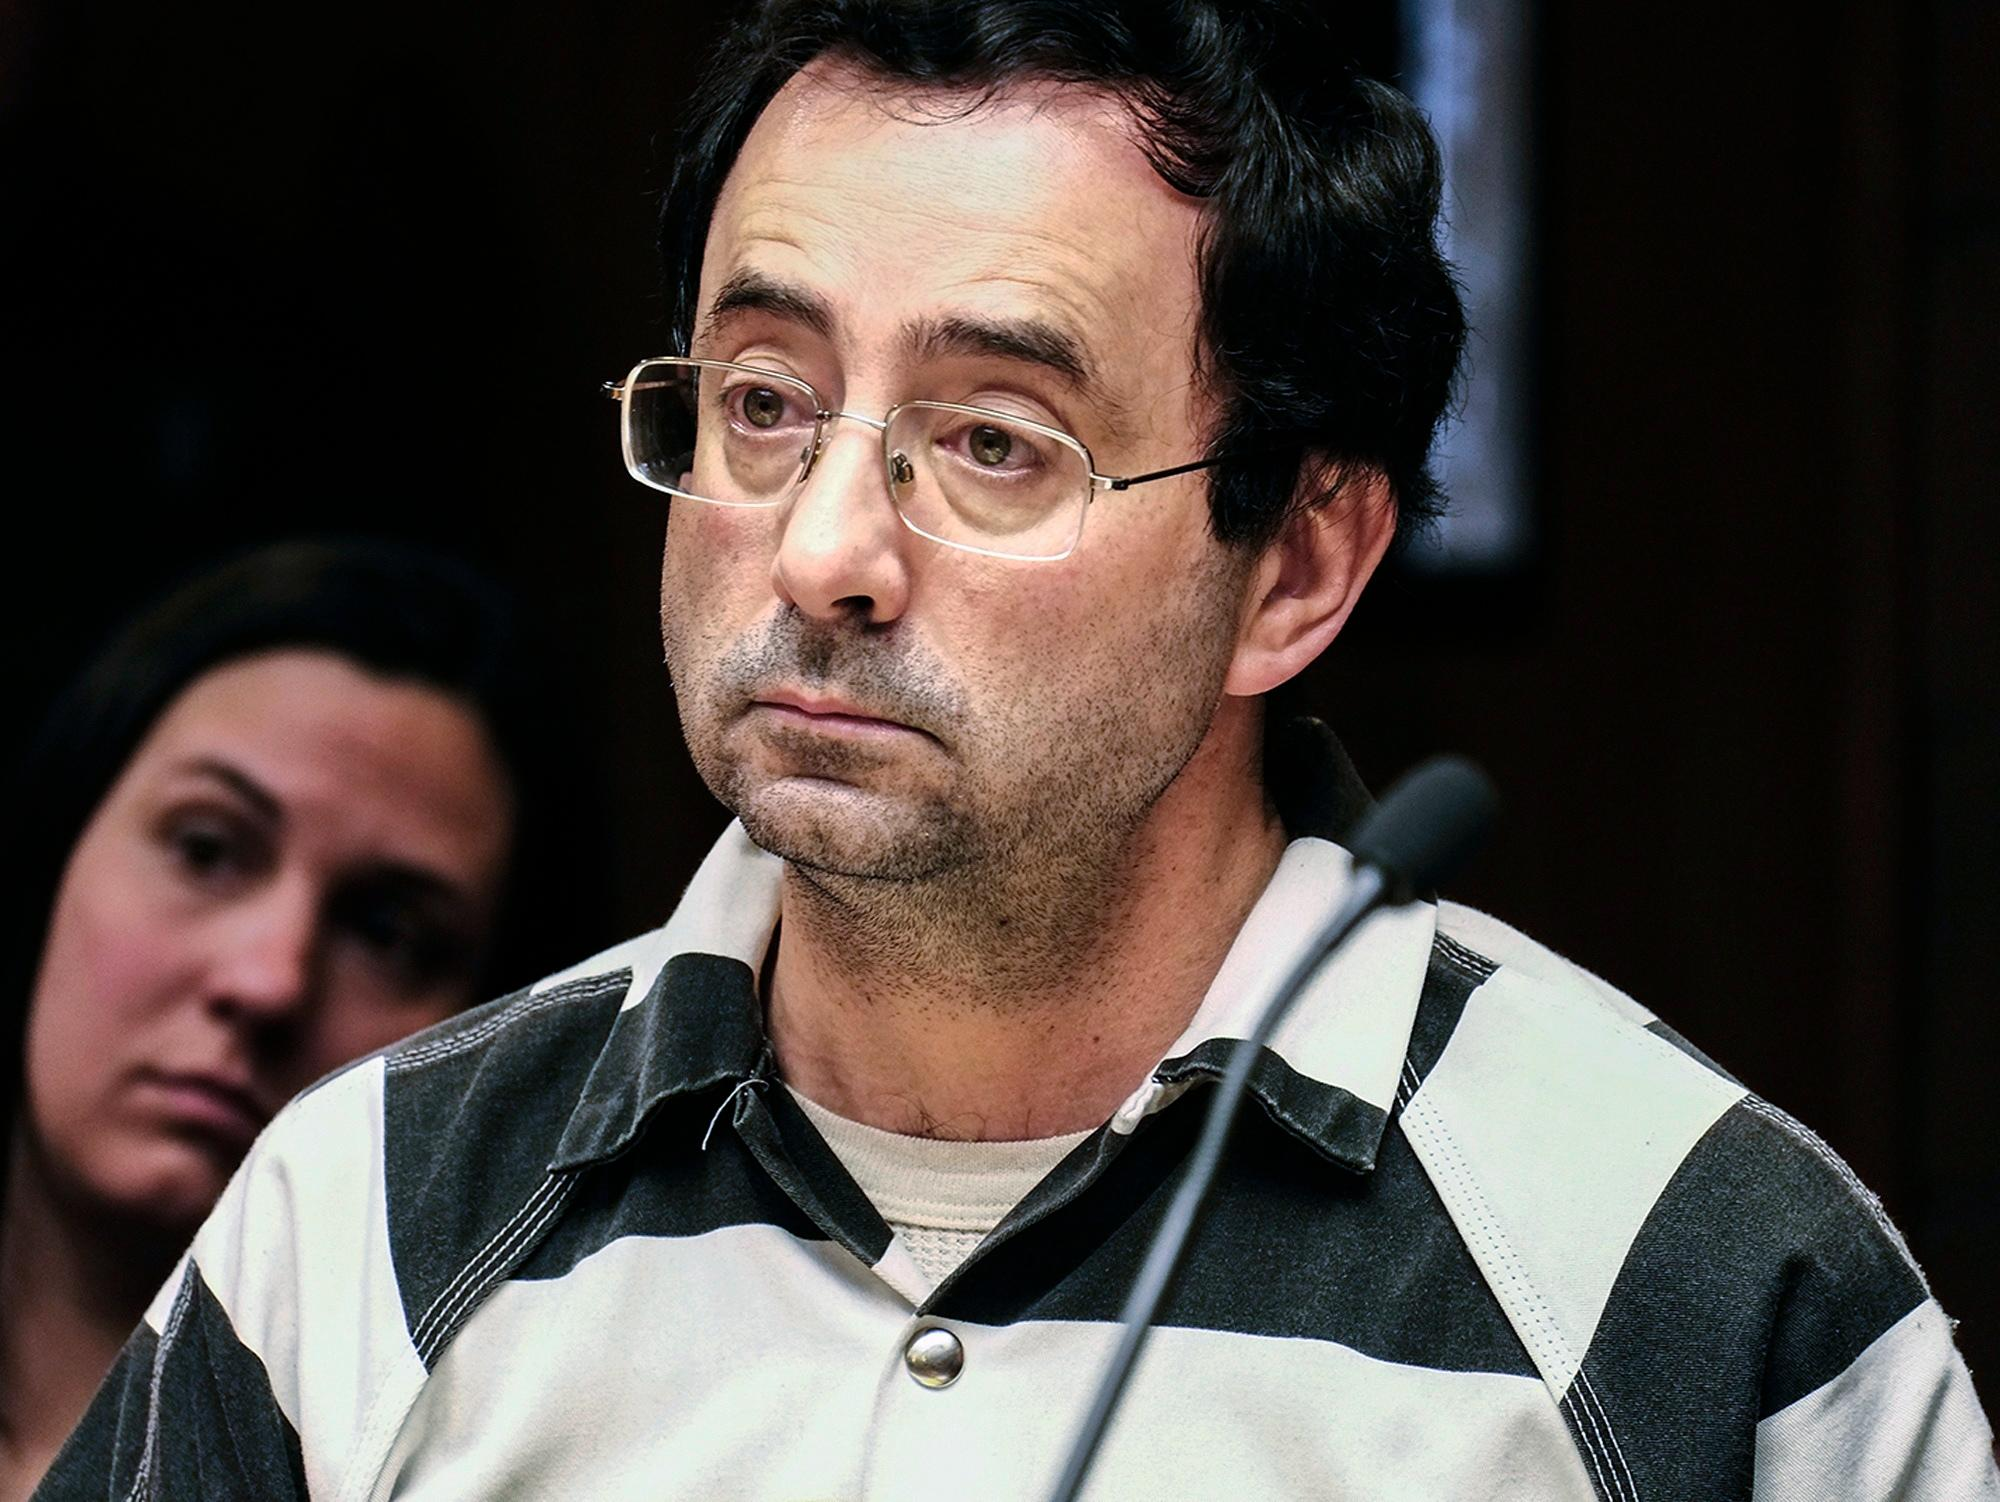 FILE - In this Feb. 17, 2017, file photo, Dr. Larry Nassar listens to testimony of a witness during a preliminary hearing, in Lansing, Mich.{&amp;nbsp;} (Robert Killips  /Lansing State Journal via AP, File)<p></p>